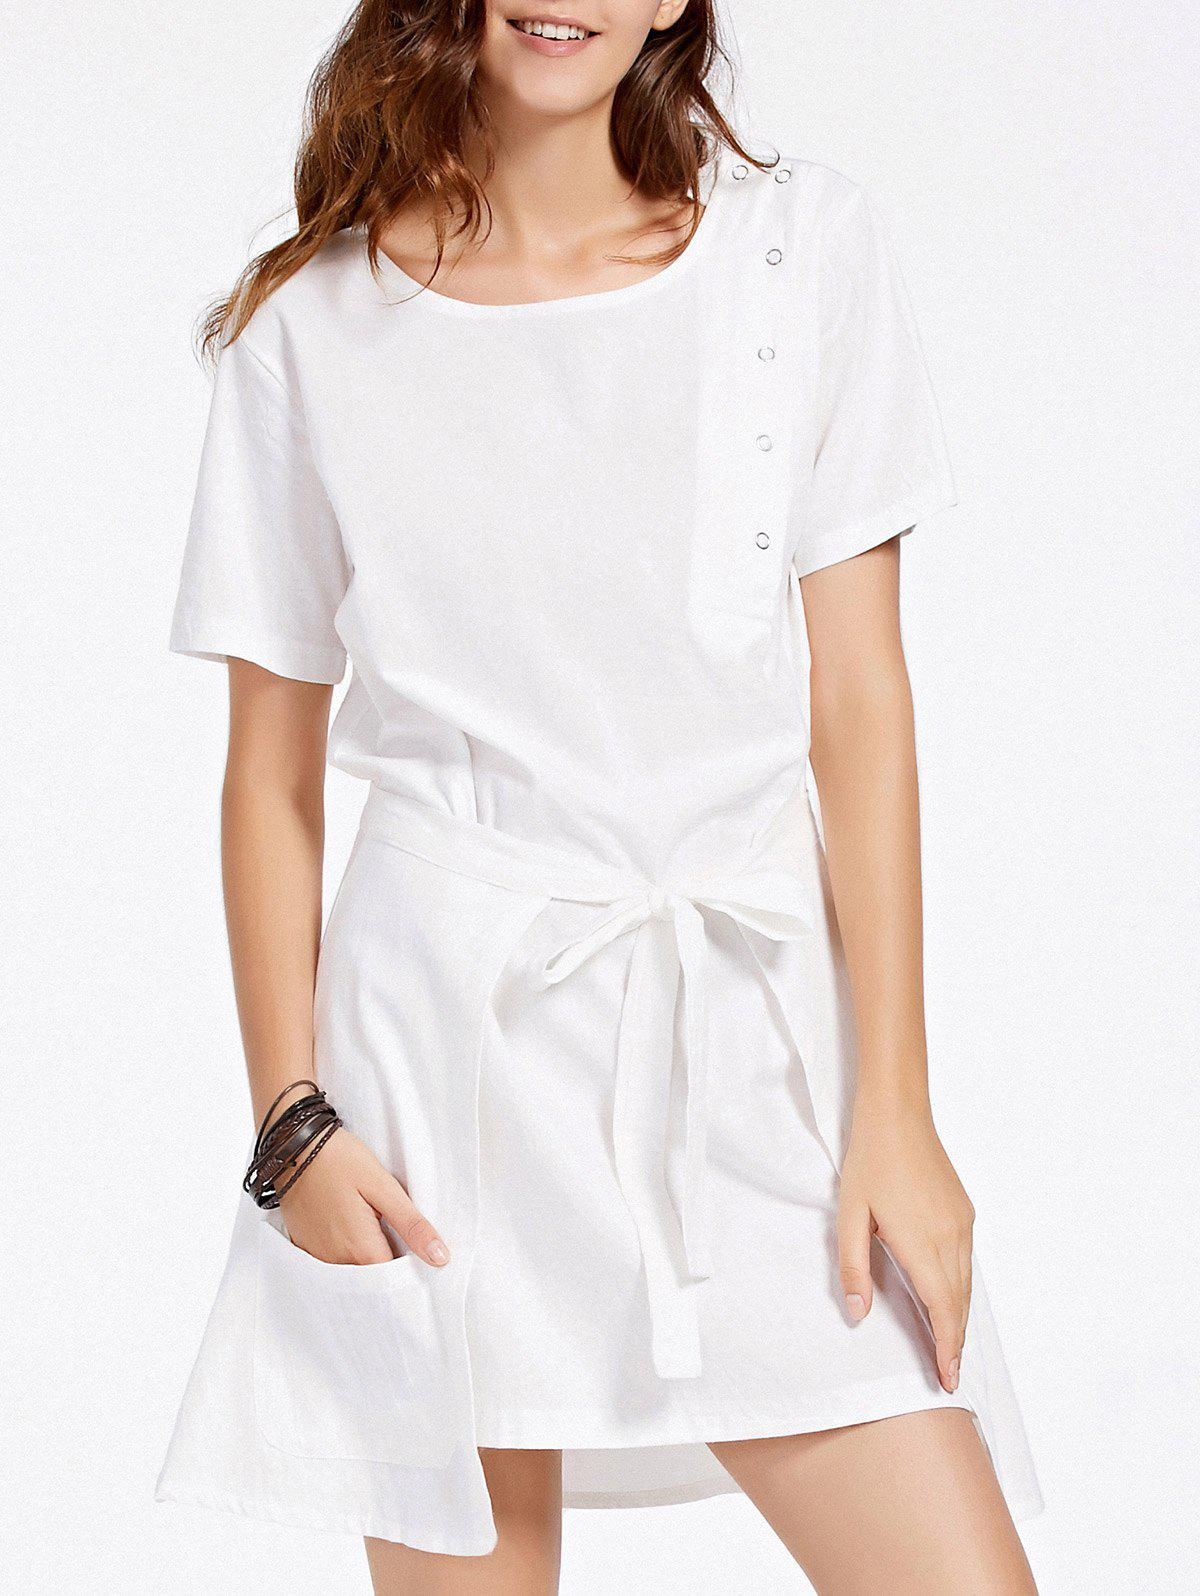 Stylish Women's Short Sleeve Dress + Self-Tie Cover Up Twinset